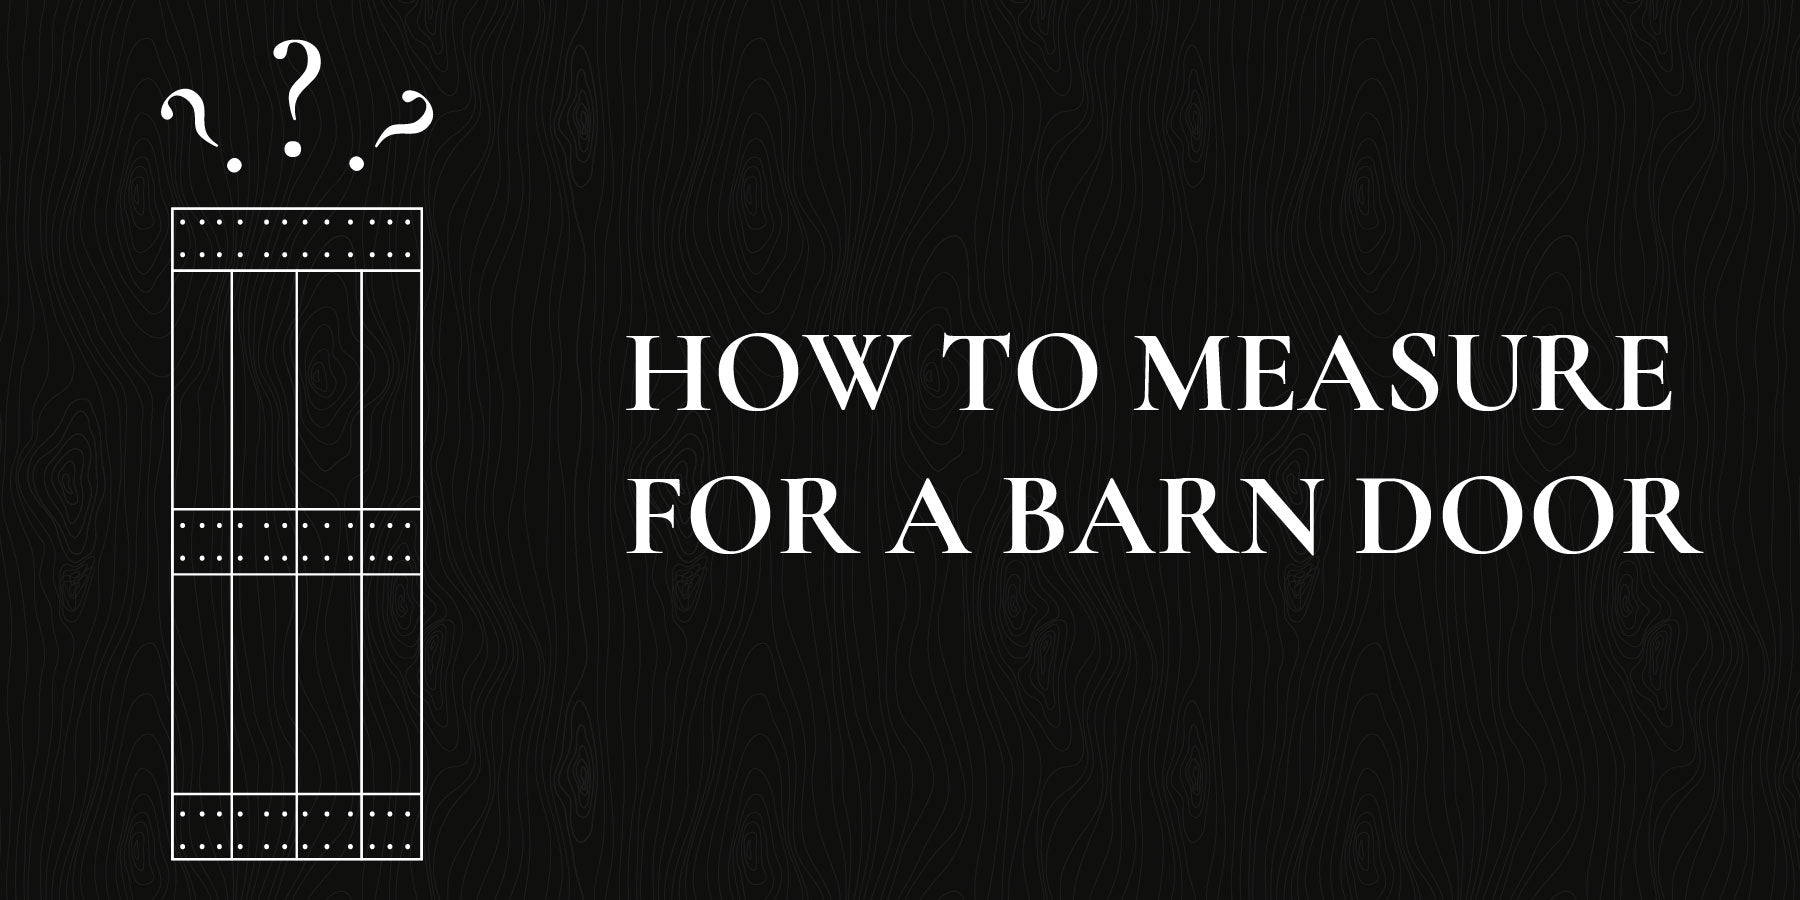 How to Measure for a Barn Door - An Illustrated Guide banner